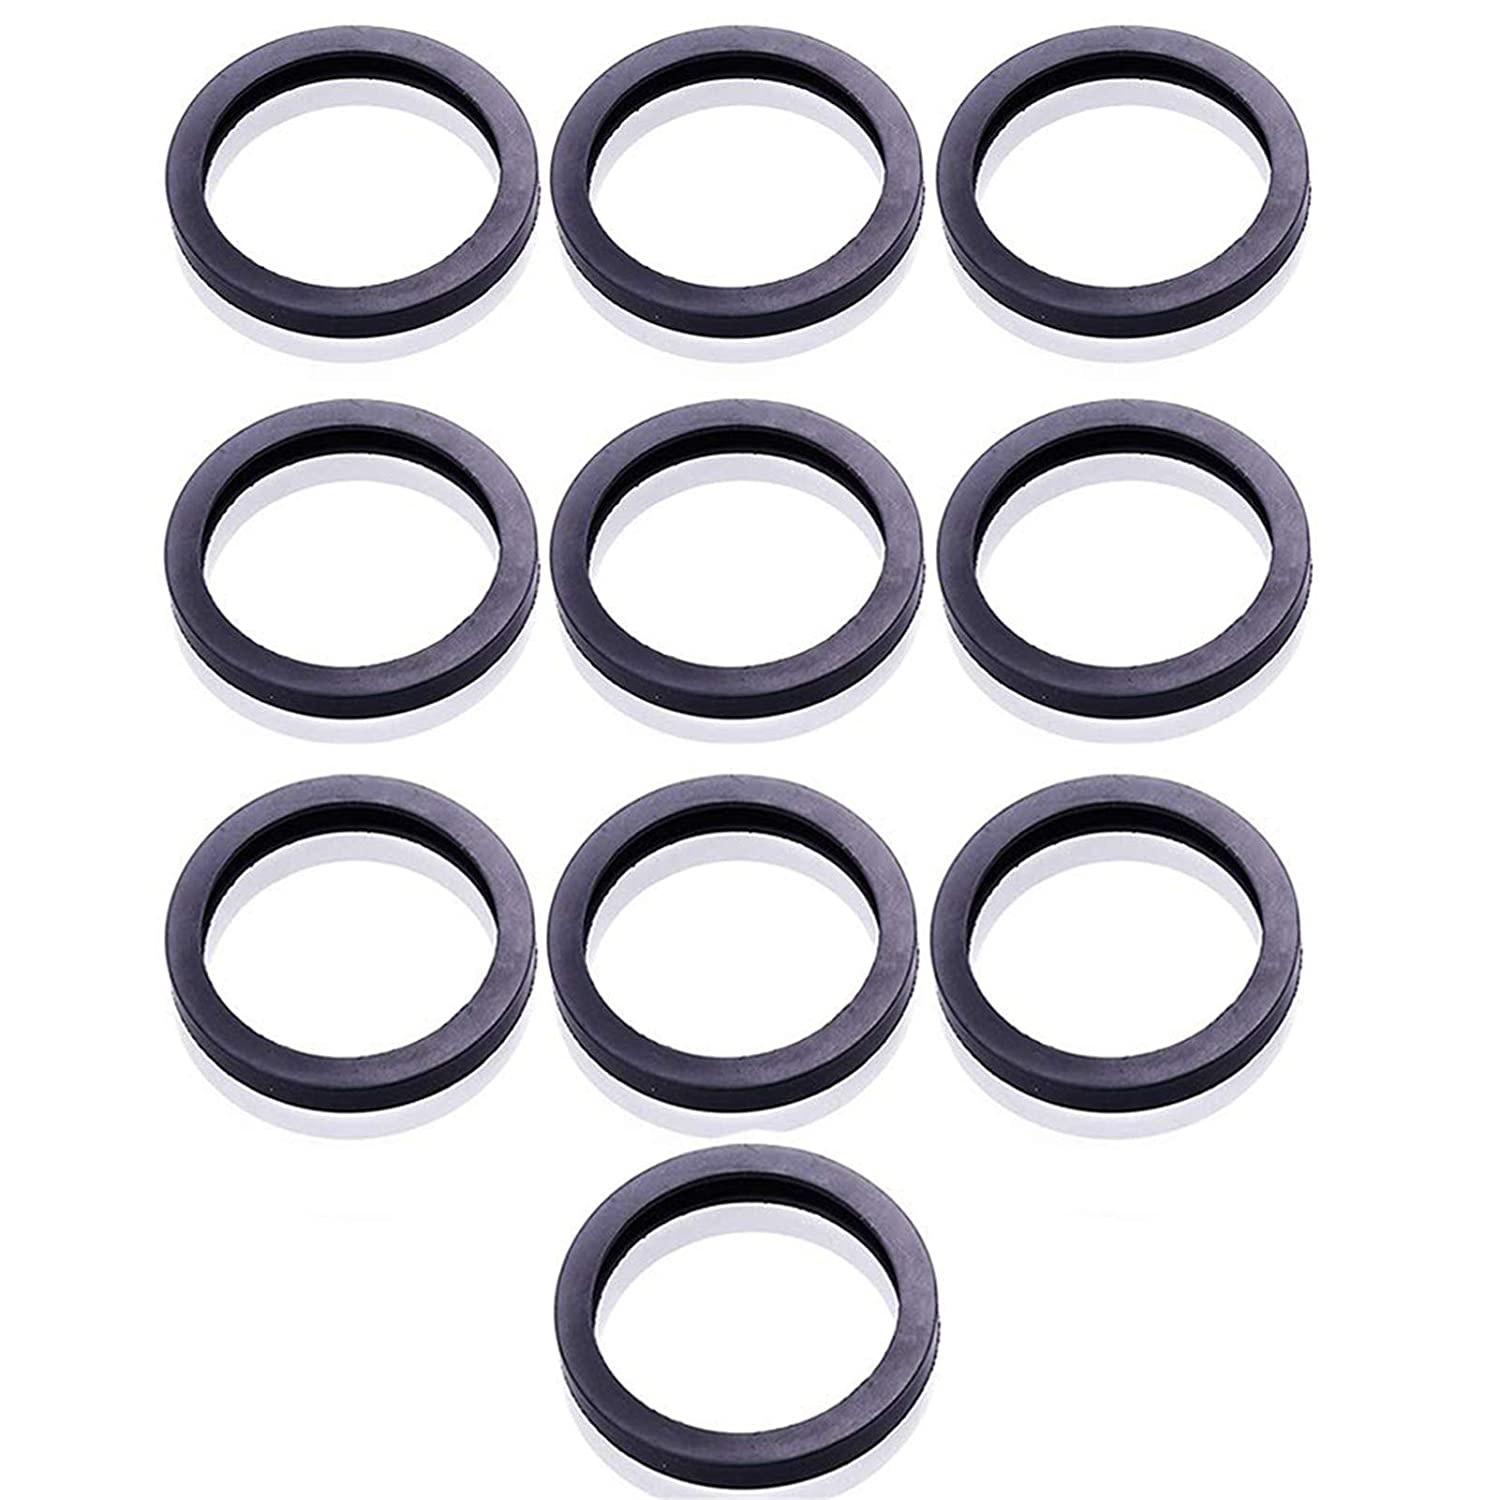 ORANDESIGNE 10Pack Gas Can Spout Ring O Unive Gasket Replacement Oakland Many popular brands Mall